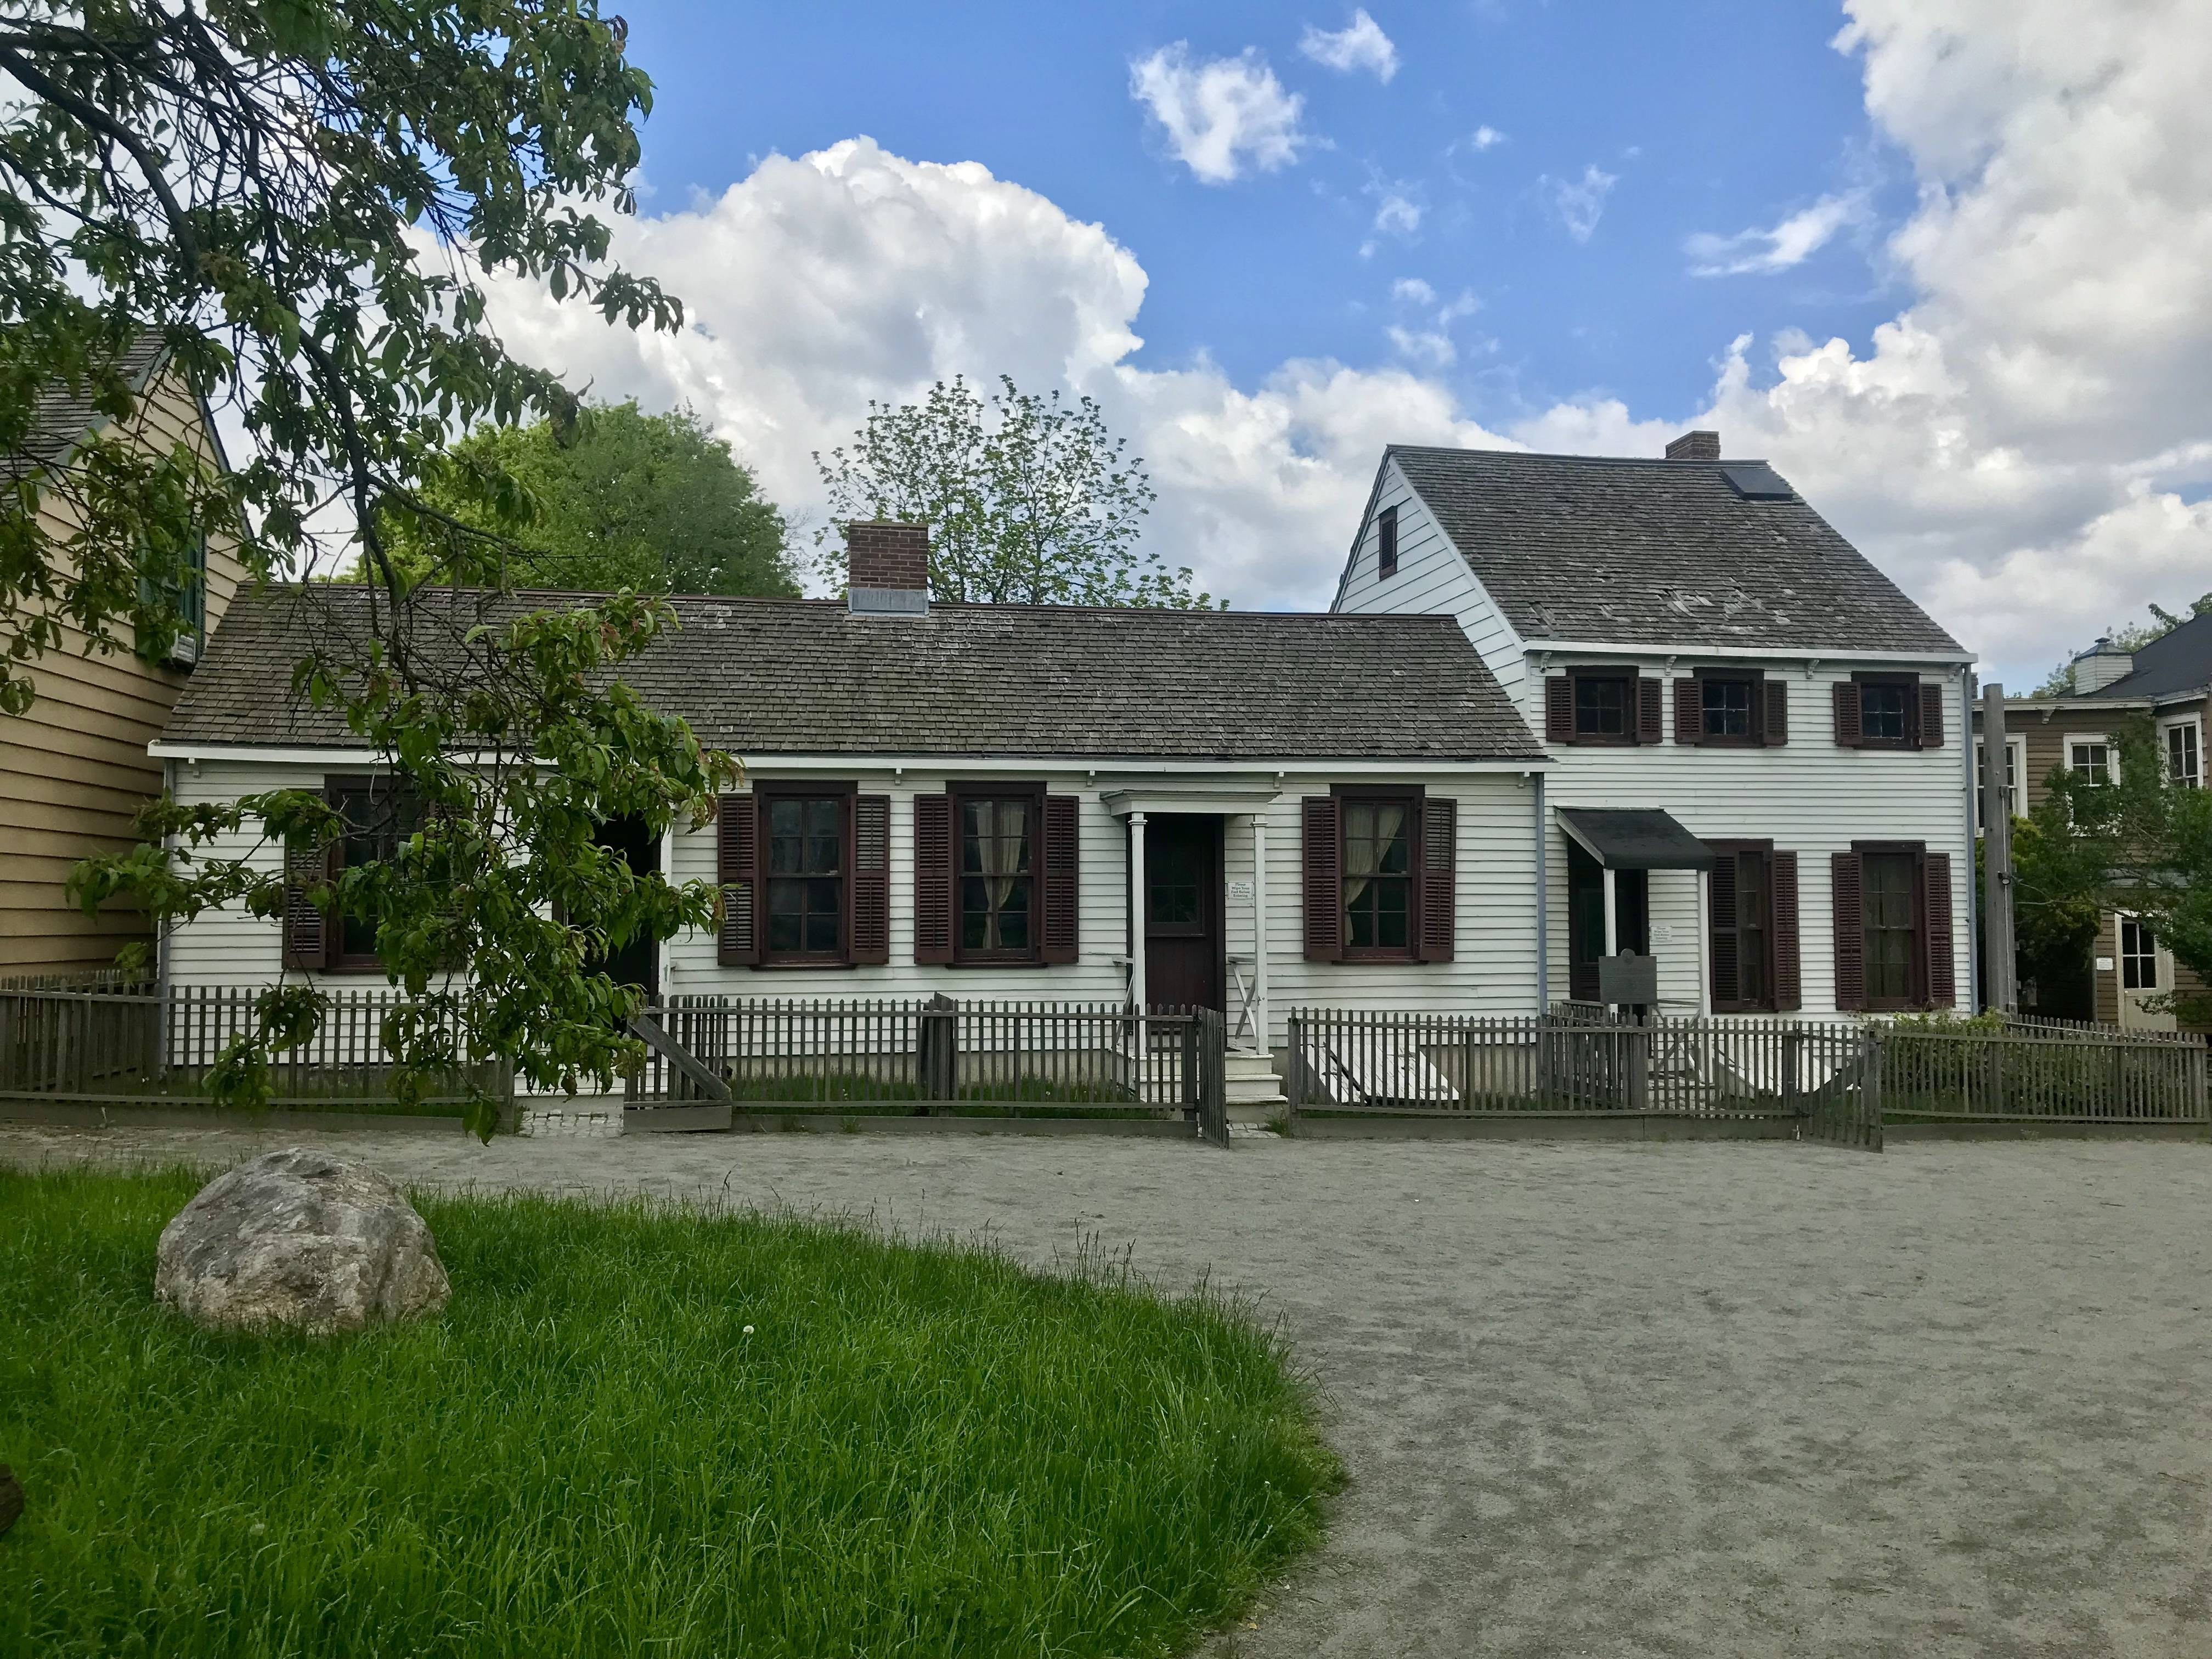 Newly designated a member of theCultural Institution Group, Weeksville has secured permanent founding from the city.